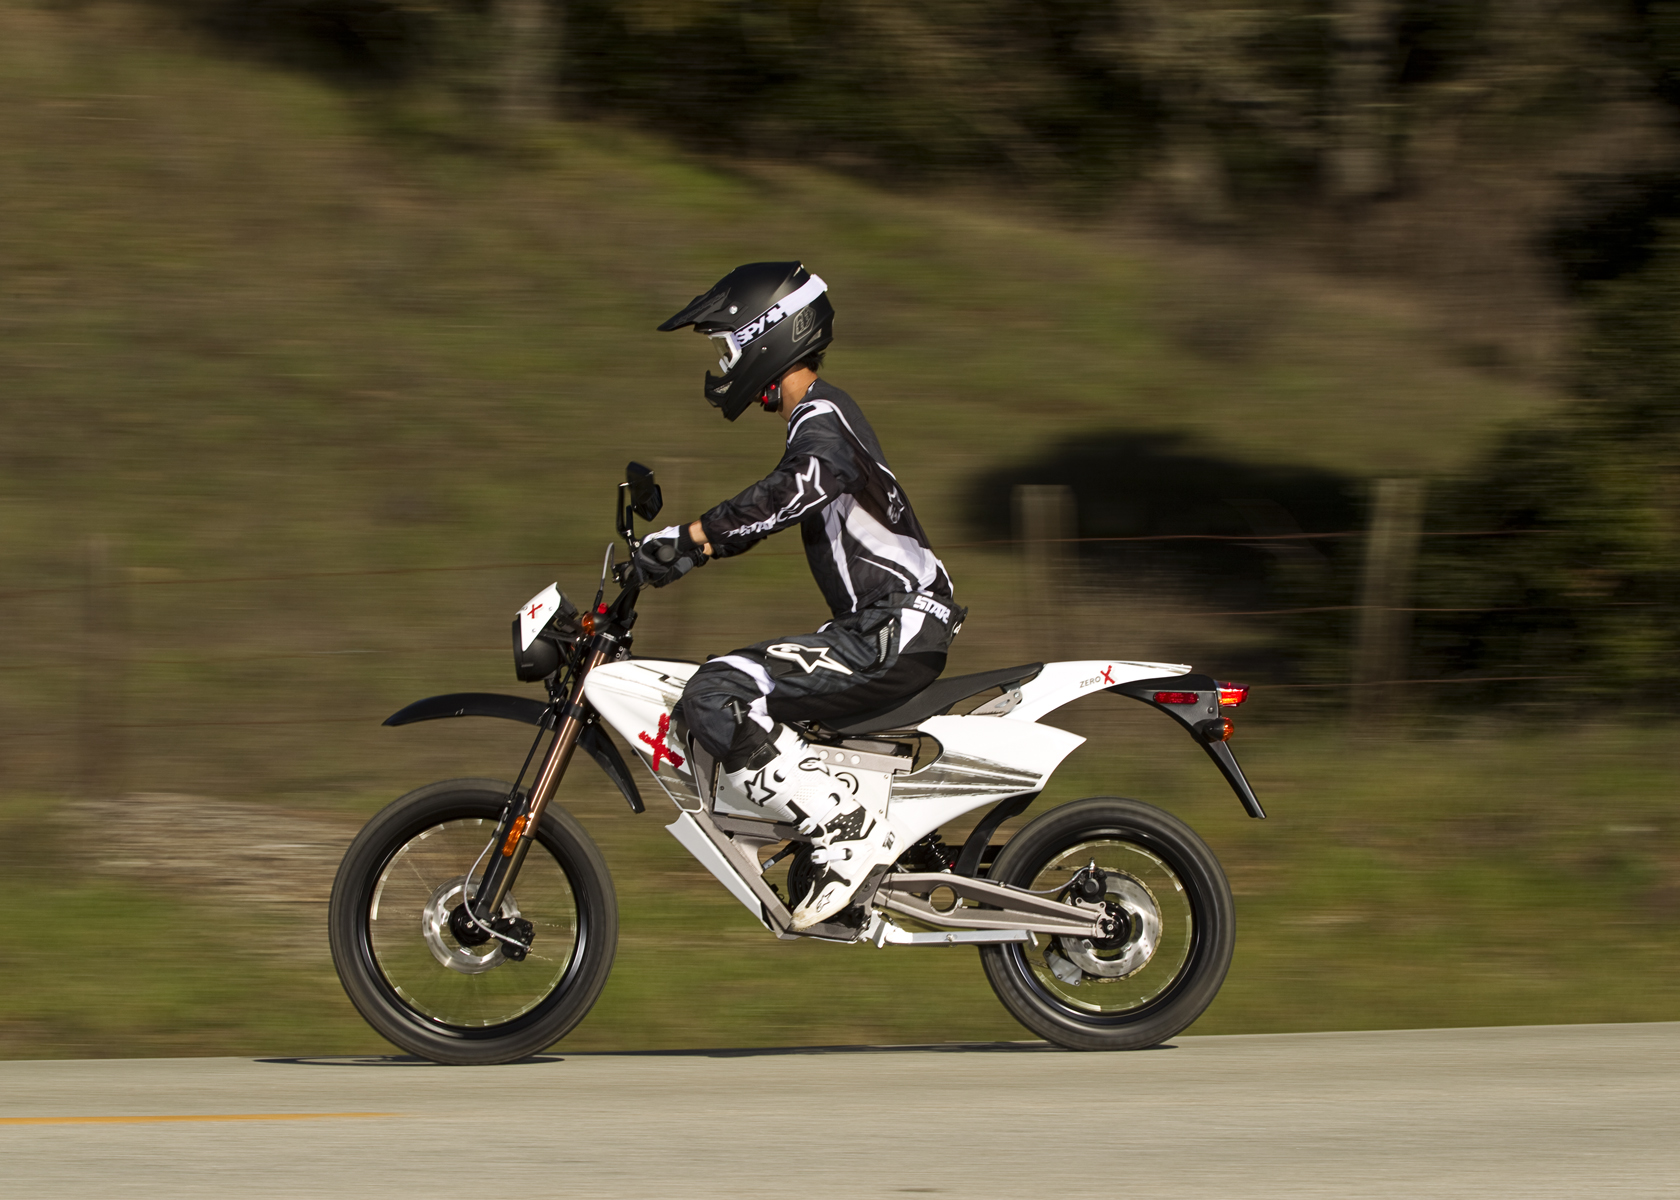 2011 Zero X Electric Motorcycle: Cruising on the Highway